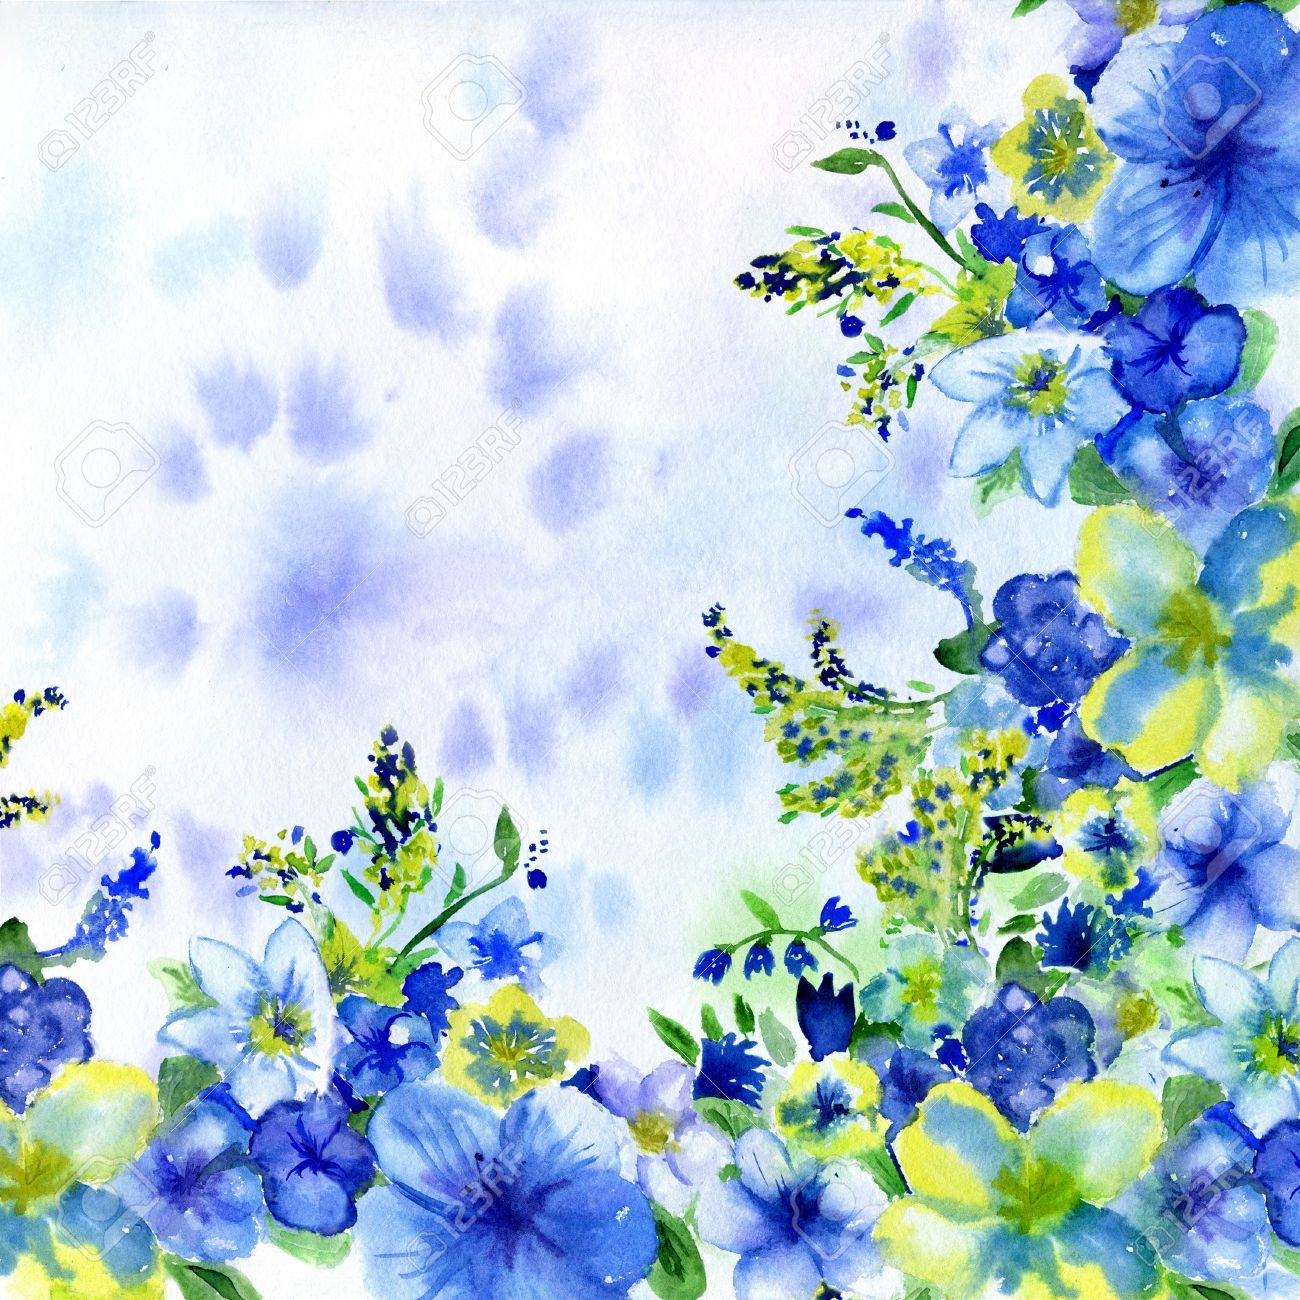 Watercolor Dark Blue And Yellow Flowers On A White Background Stock